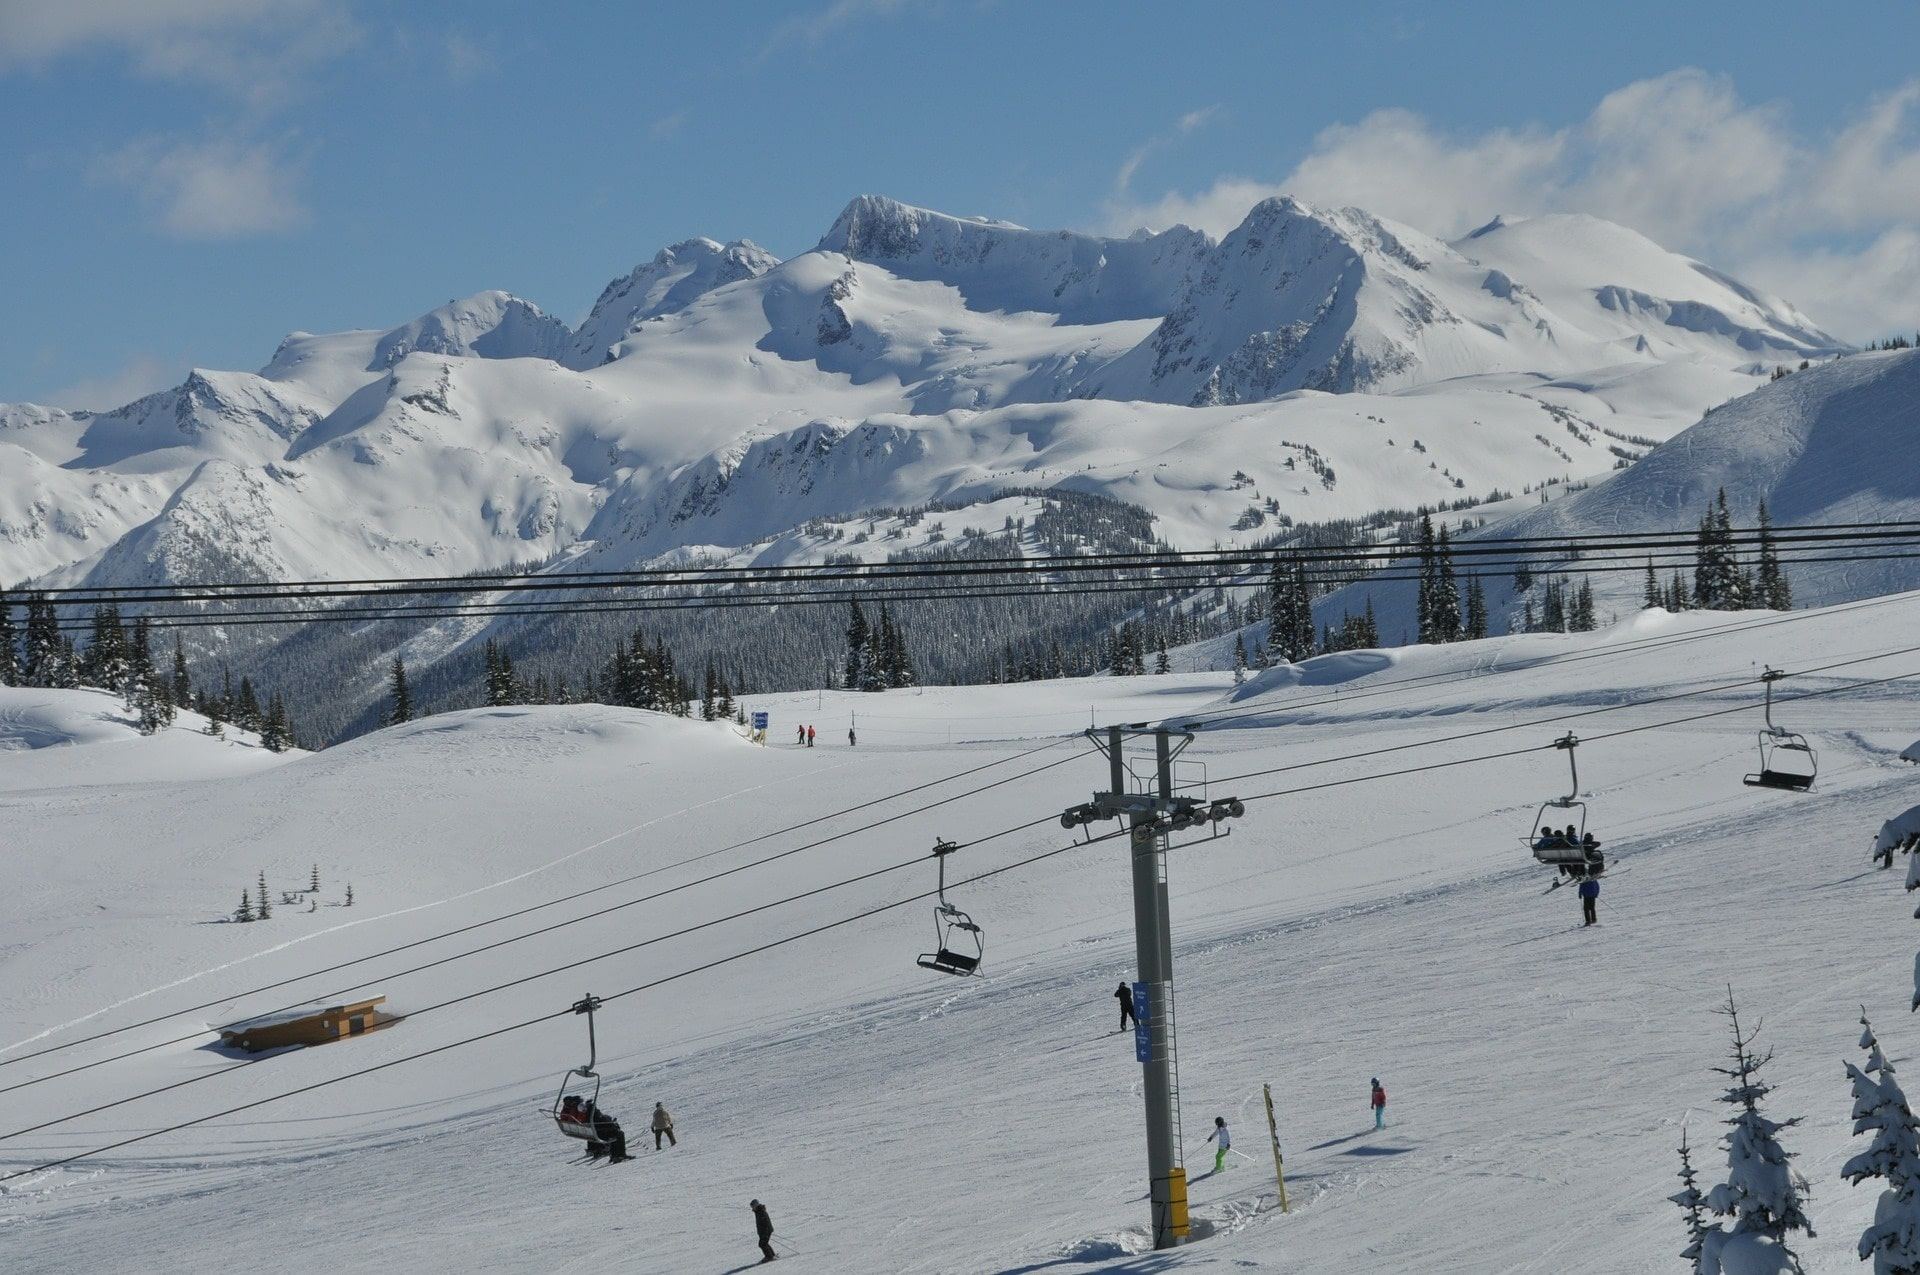 Skiing in Whistler Blackcomb. Working Holiday in Canada